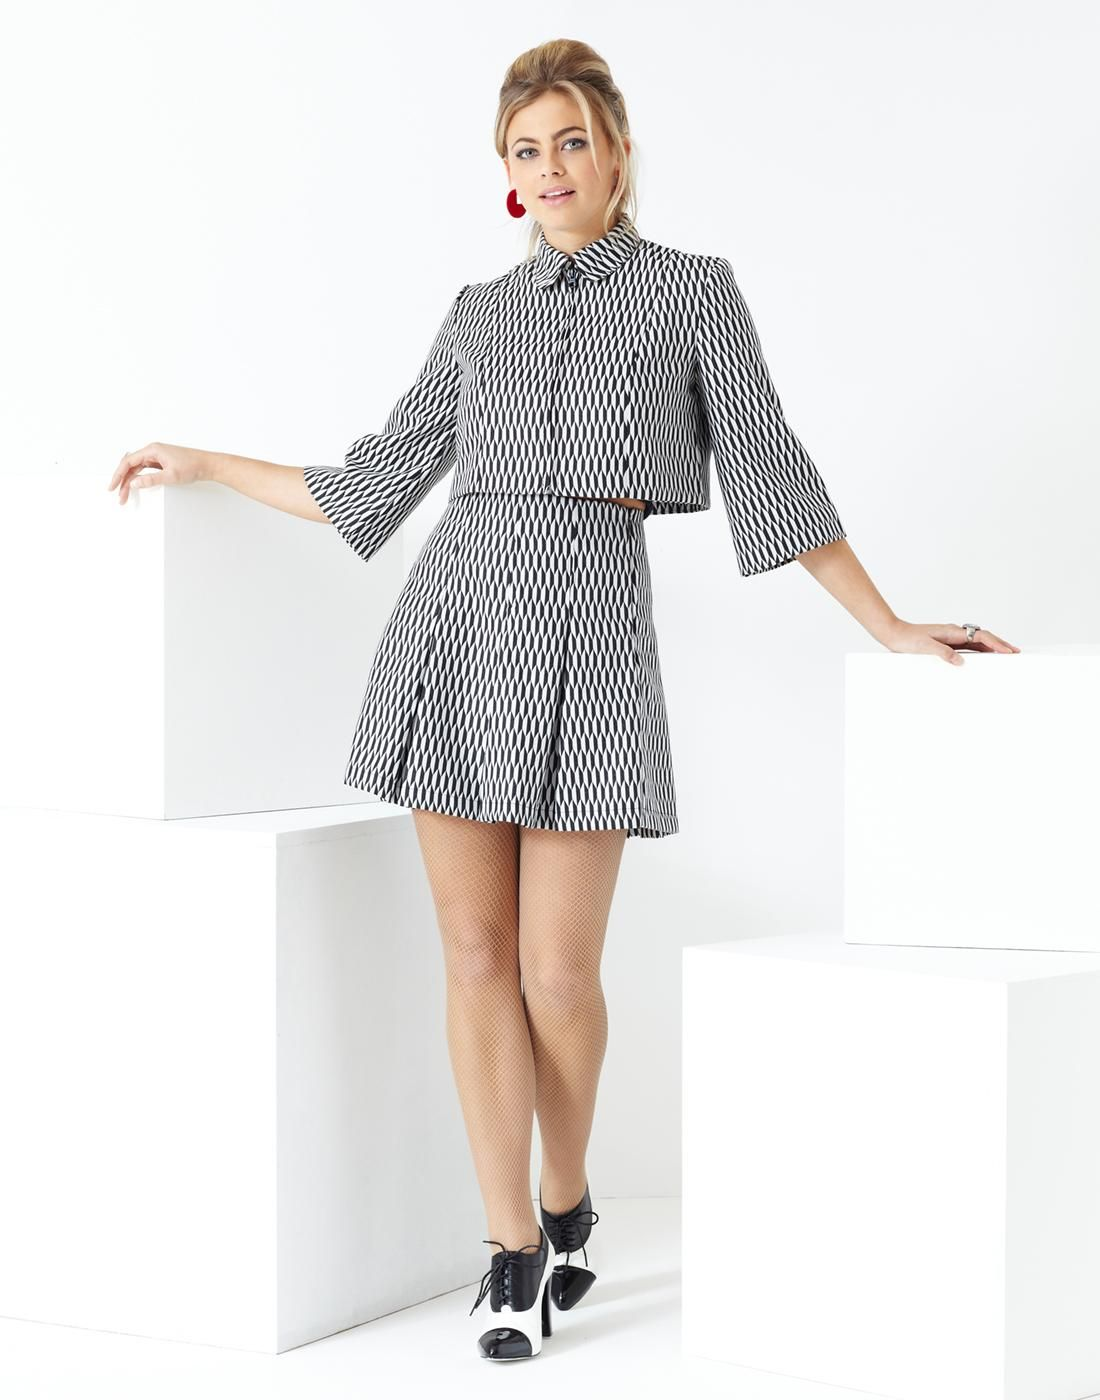 a762c407ca Bolero Jacket & Pleated Tennis Skirt In Two-Tone Harlequin Pattern. By  Madcap England, In Black & White.